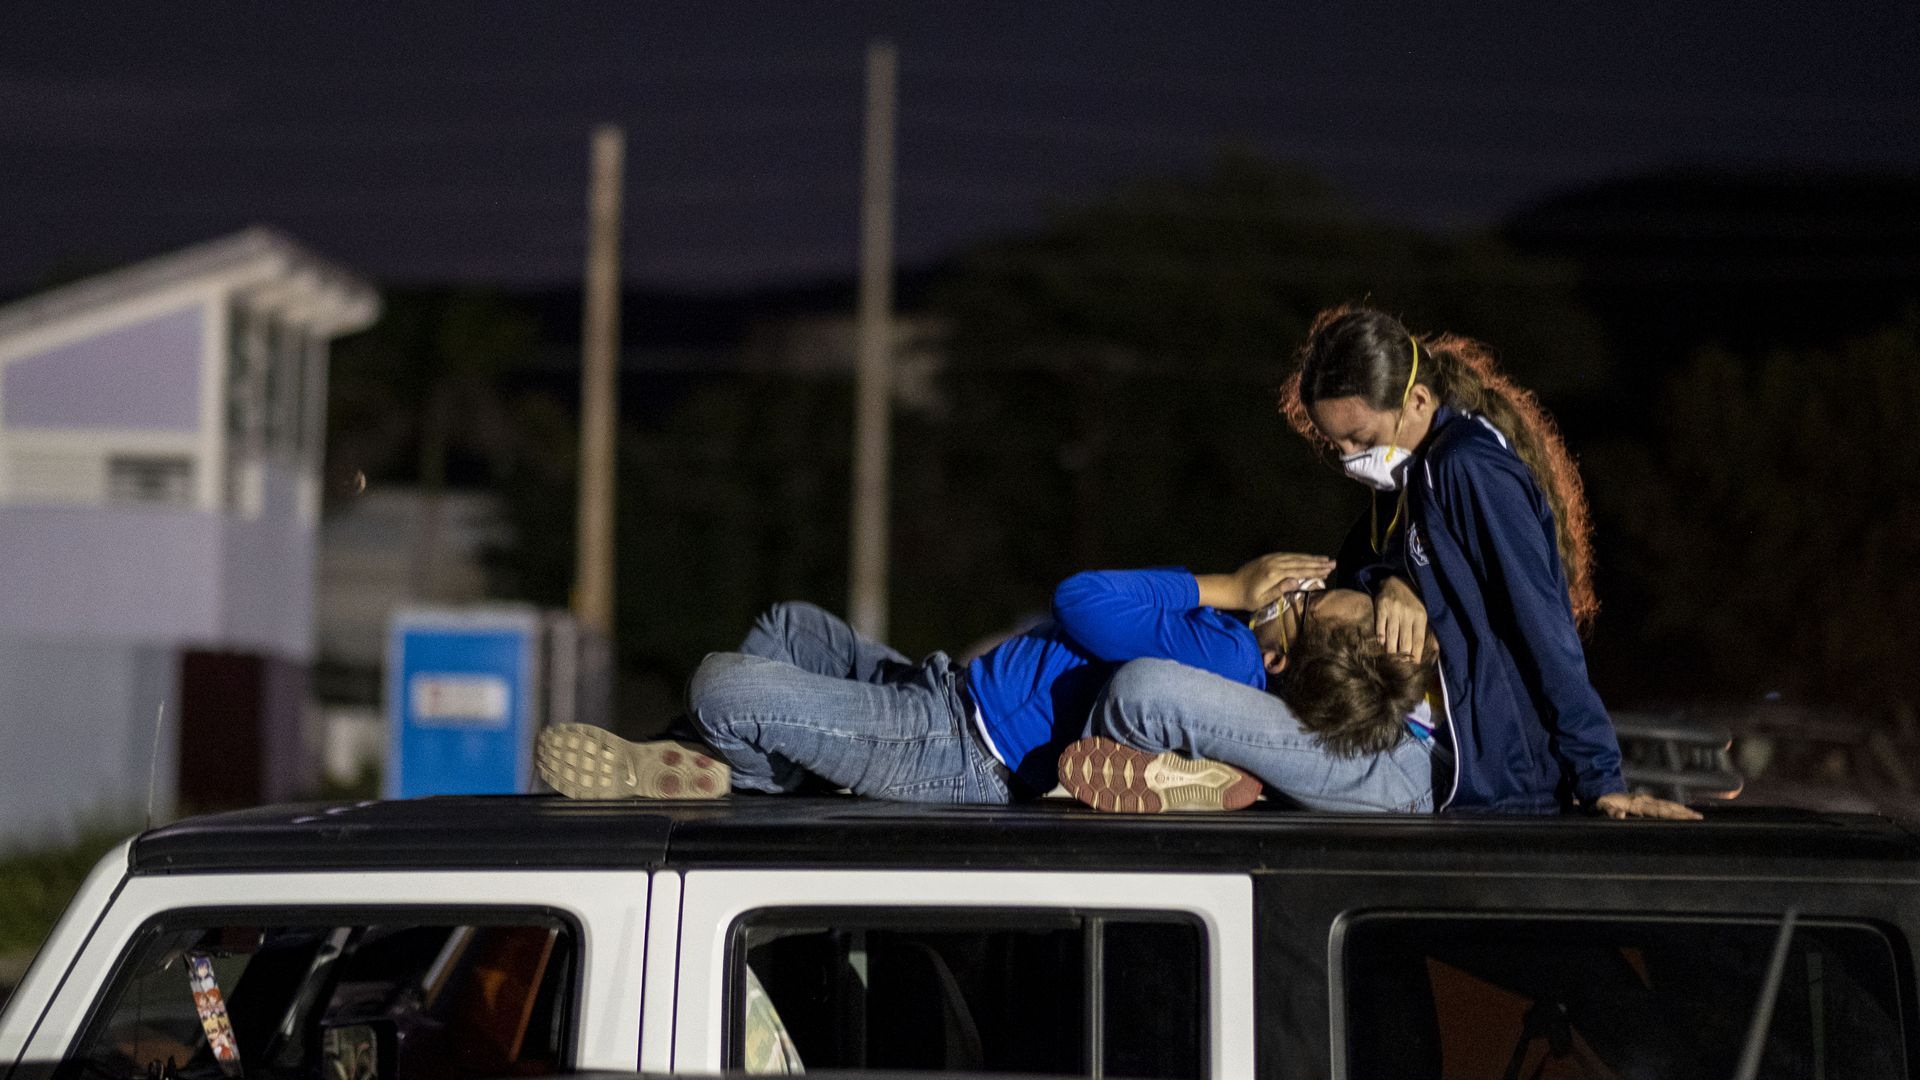 In this image, a child rests their head in a woman's lap on top of a car in Puerto Rico.